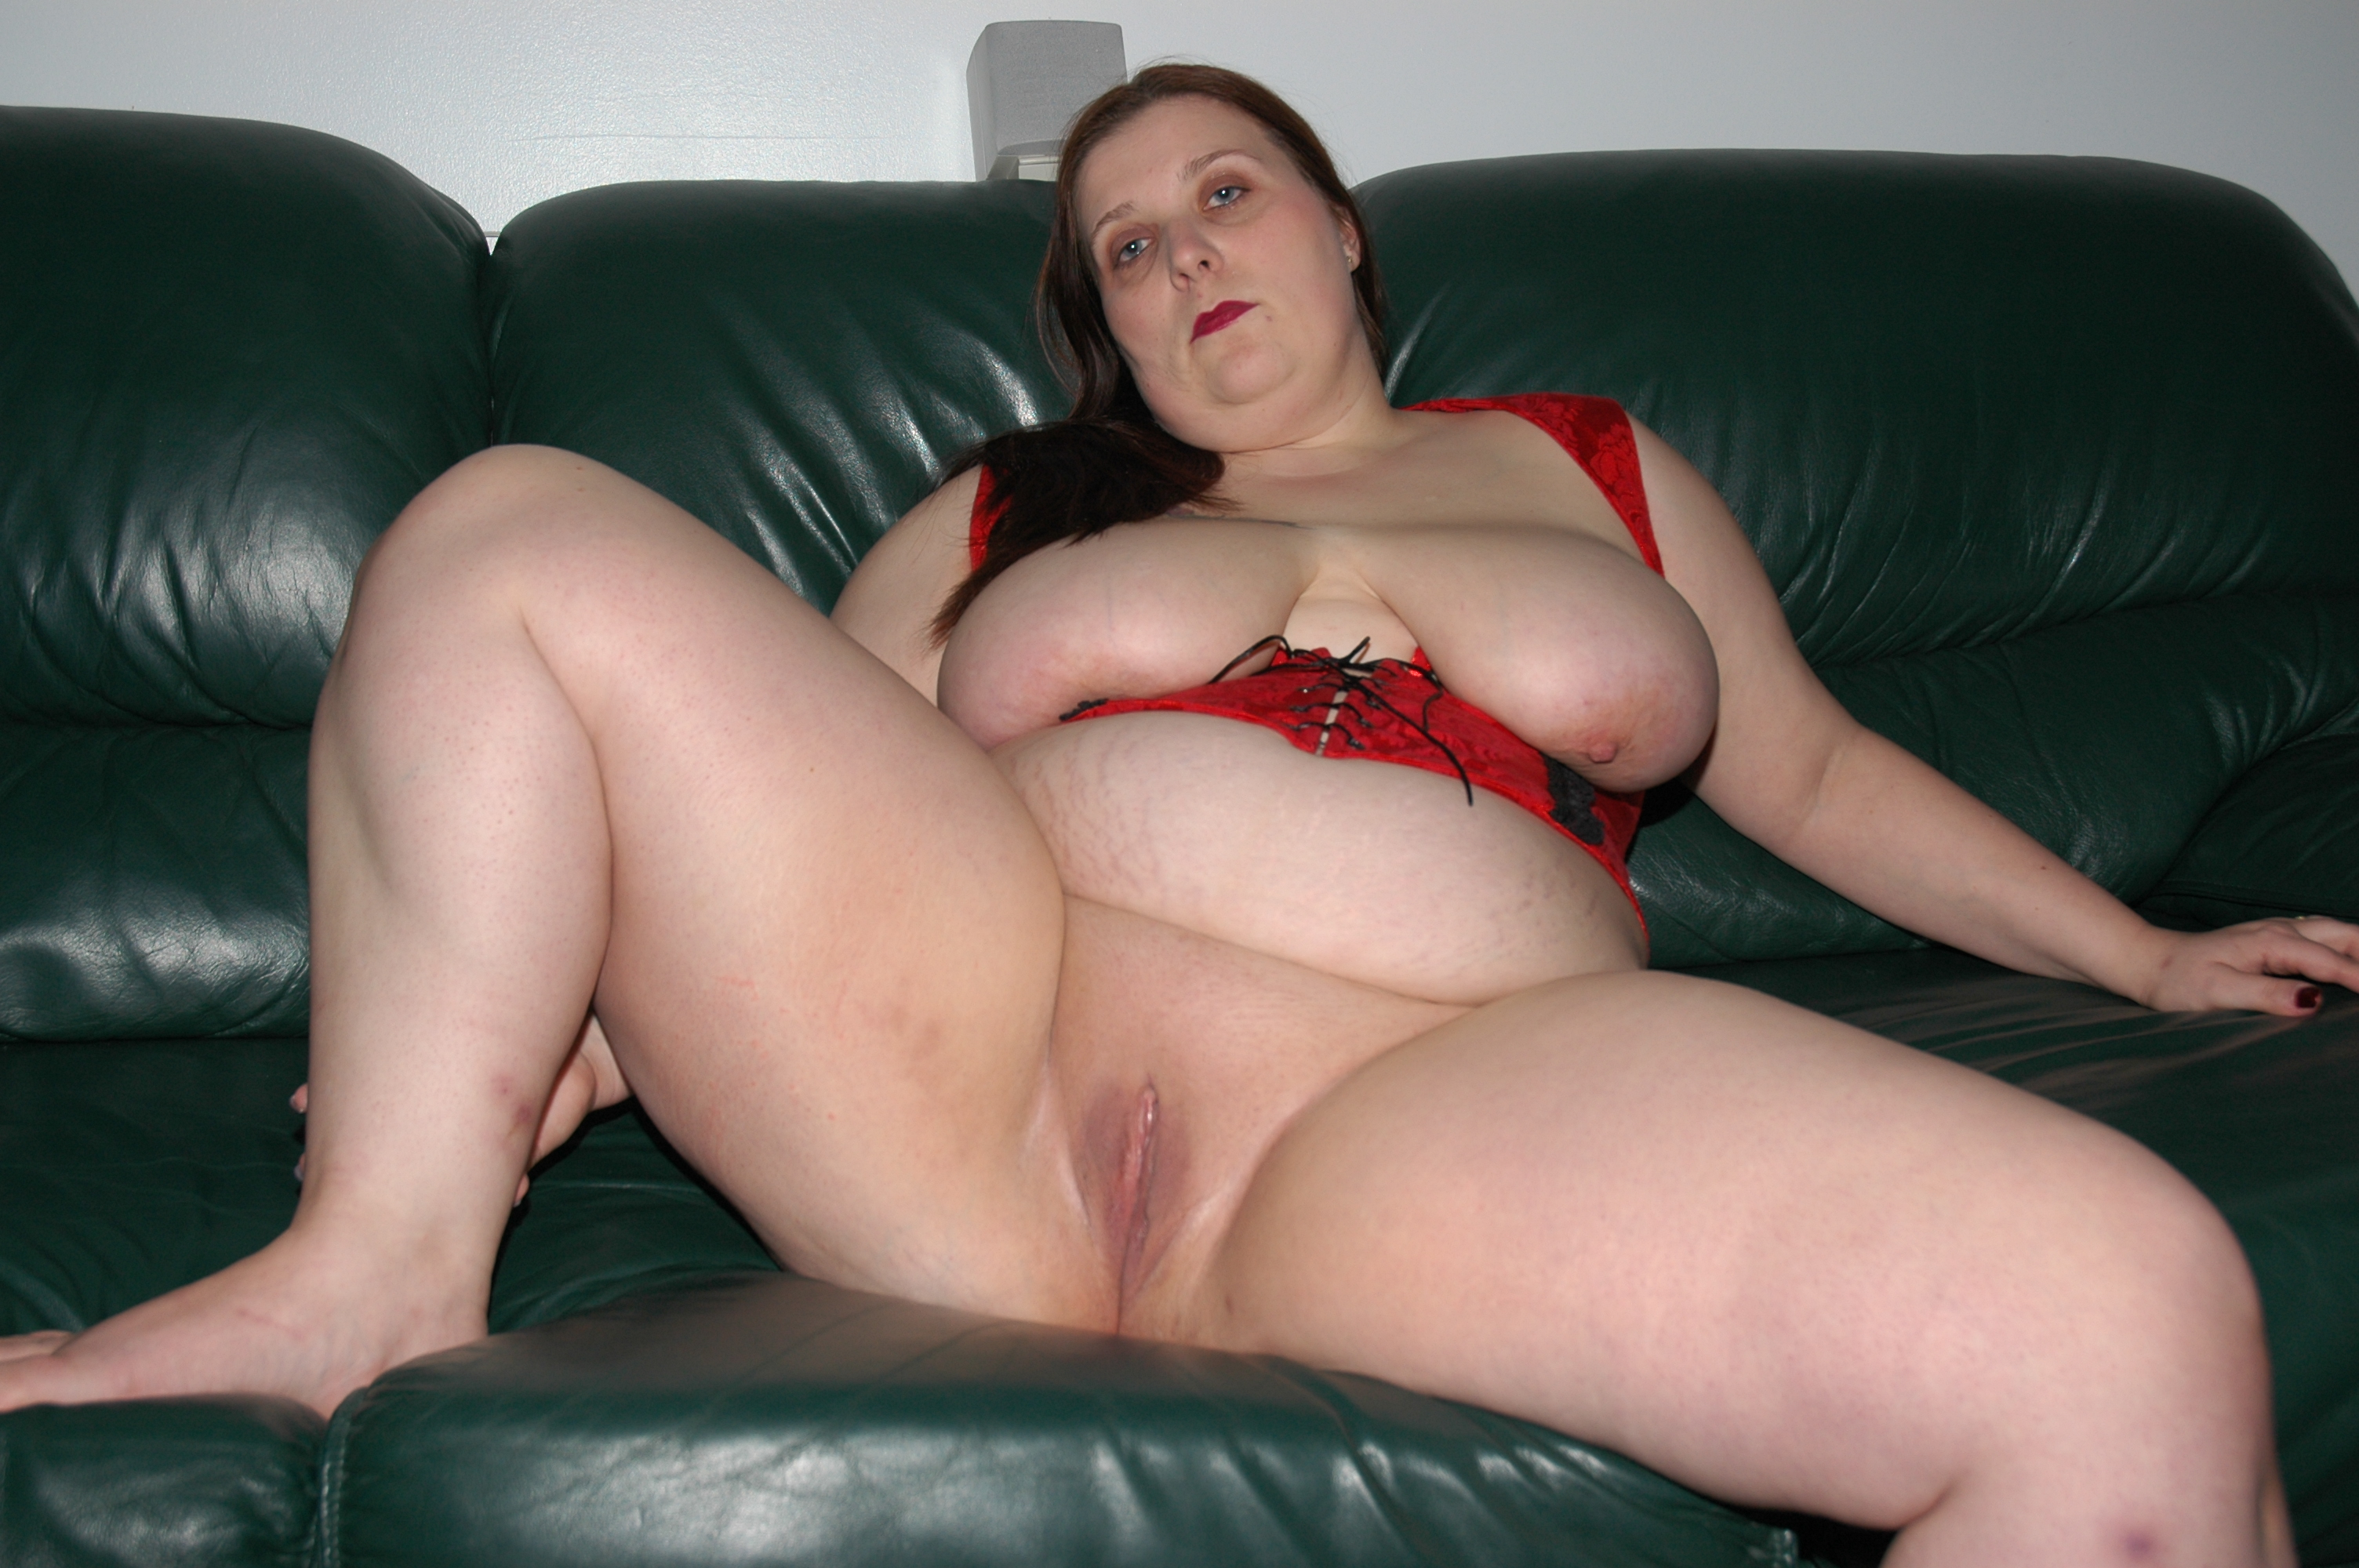 bbw porn website